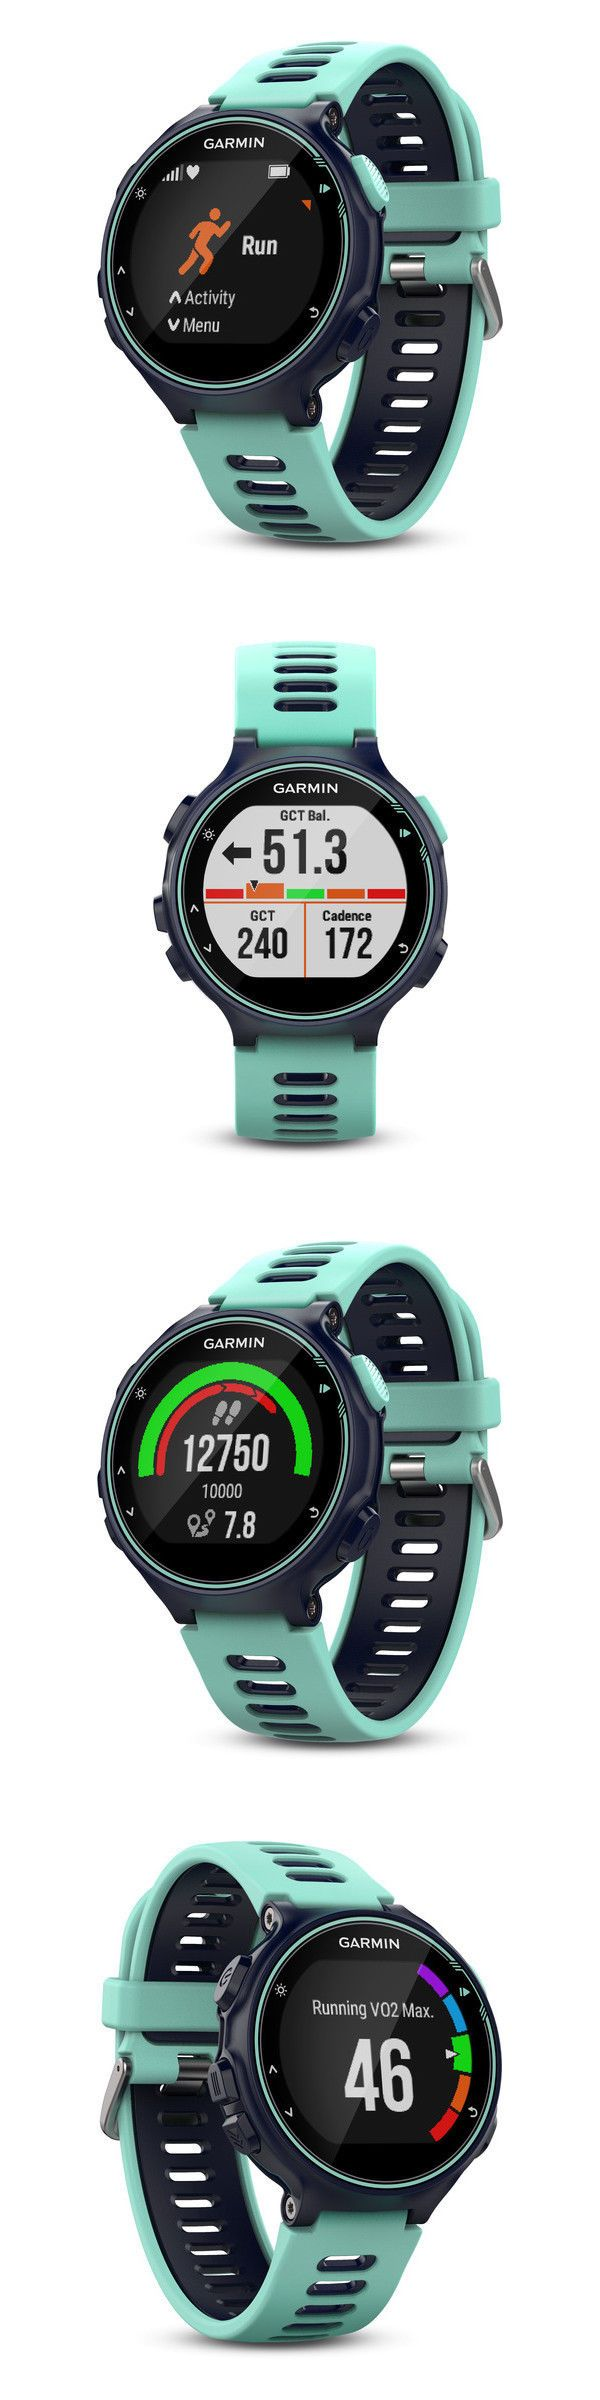 GPS and Running Watches 75230: Garmin Forerunner 735Xt Gps Triathlon Watch Multi Sport Wrist-Based Heart Rate -> BUY IT NOW ONLY: $399 on eBay!